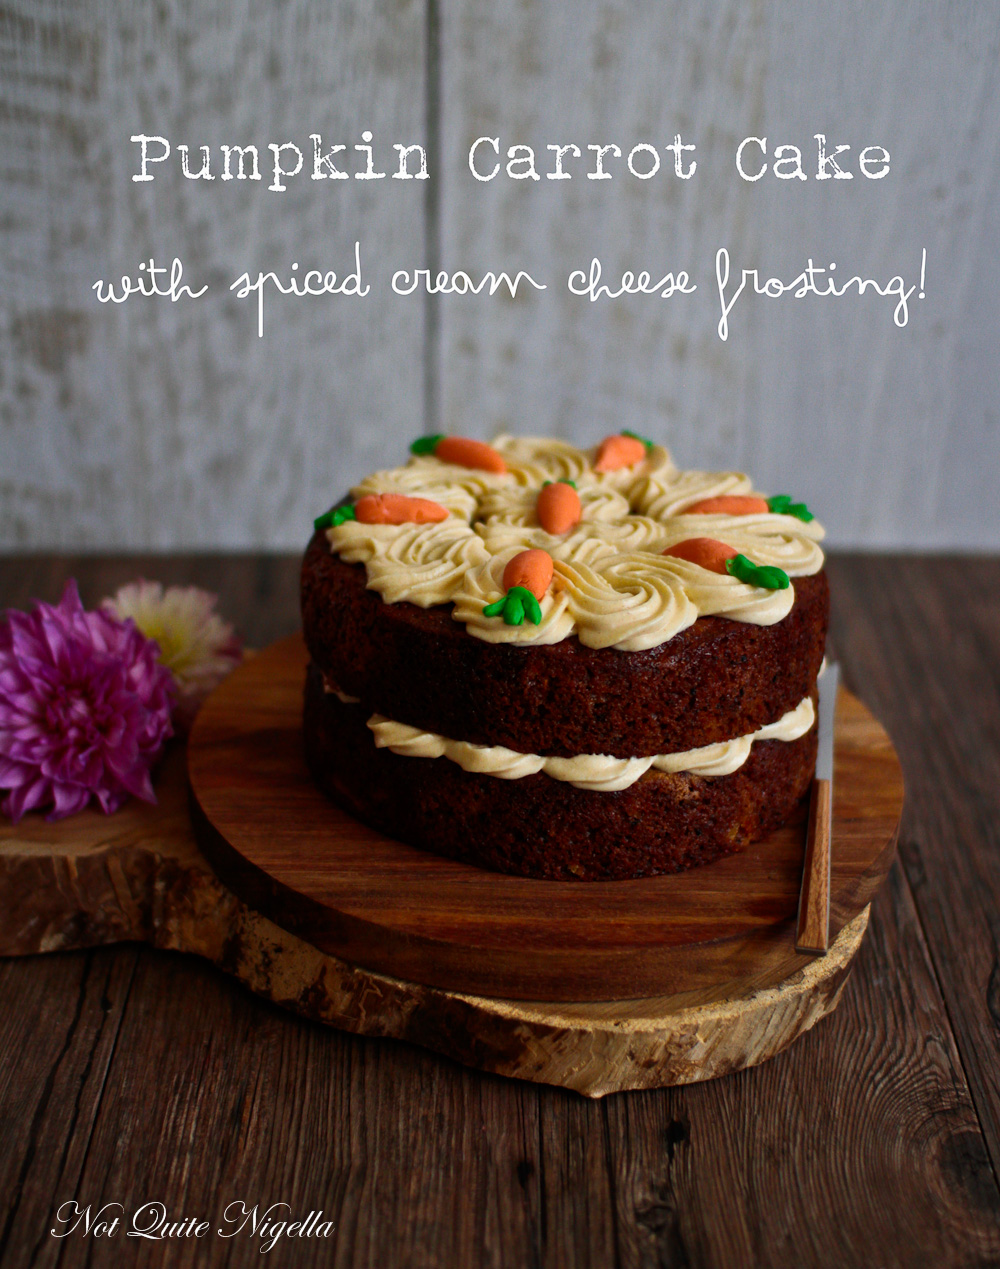 Pumpkin Carrot Cake